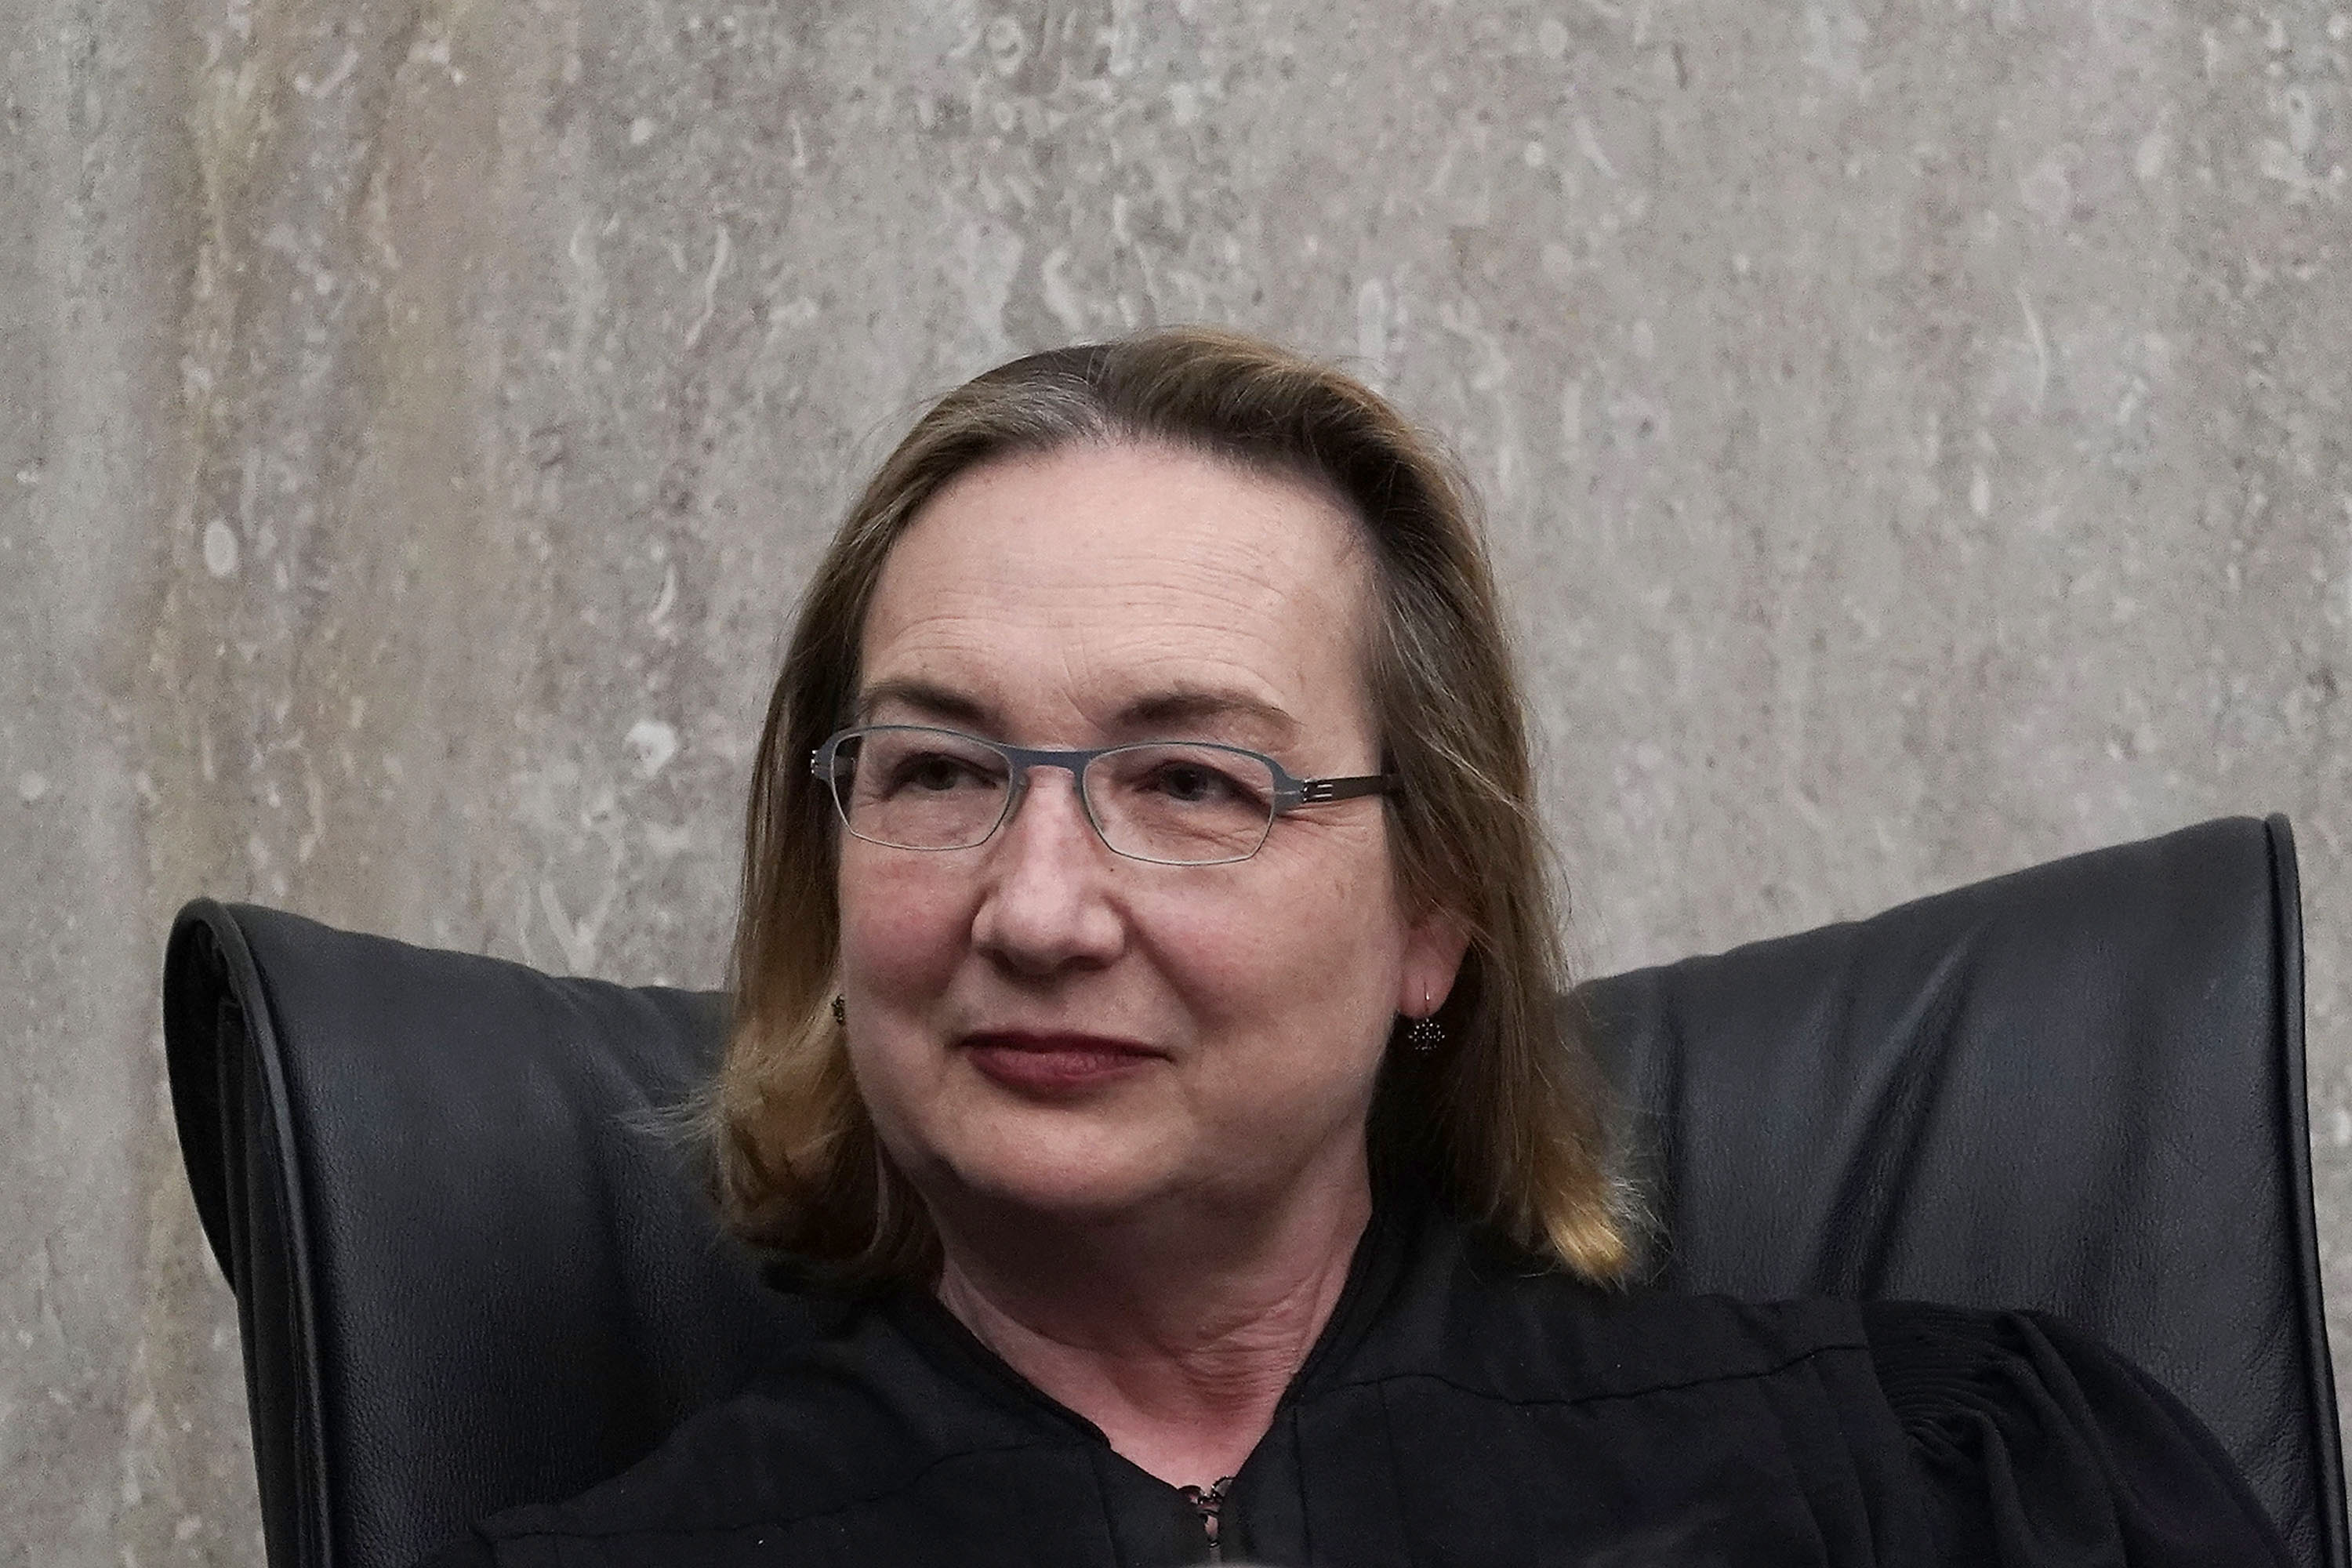 Chief Judge Beryl Howell of the DC District Court pictured on April 13, 2018.